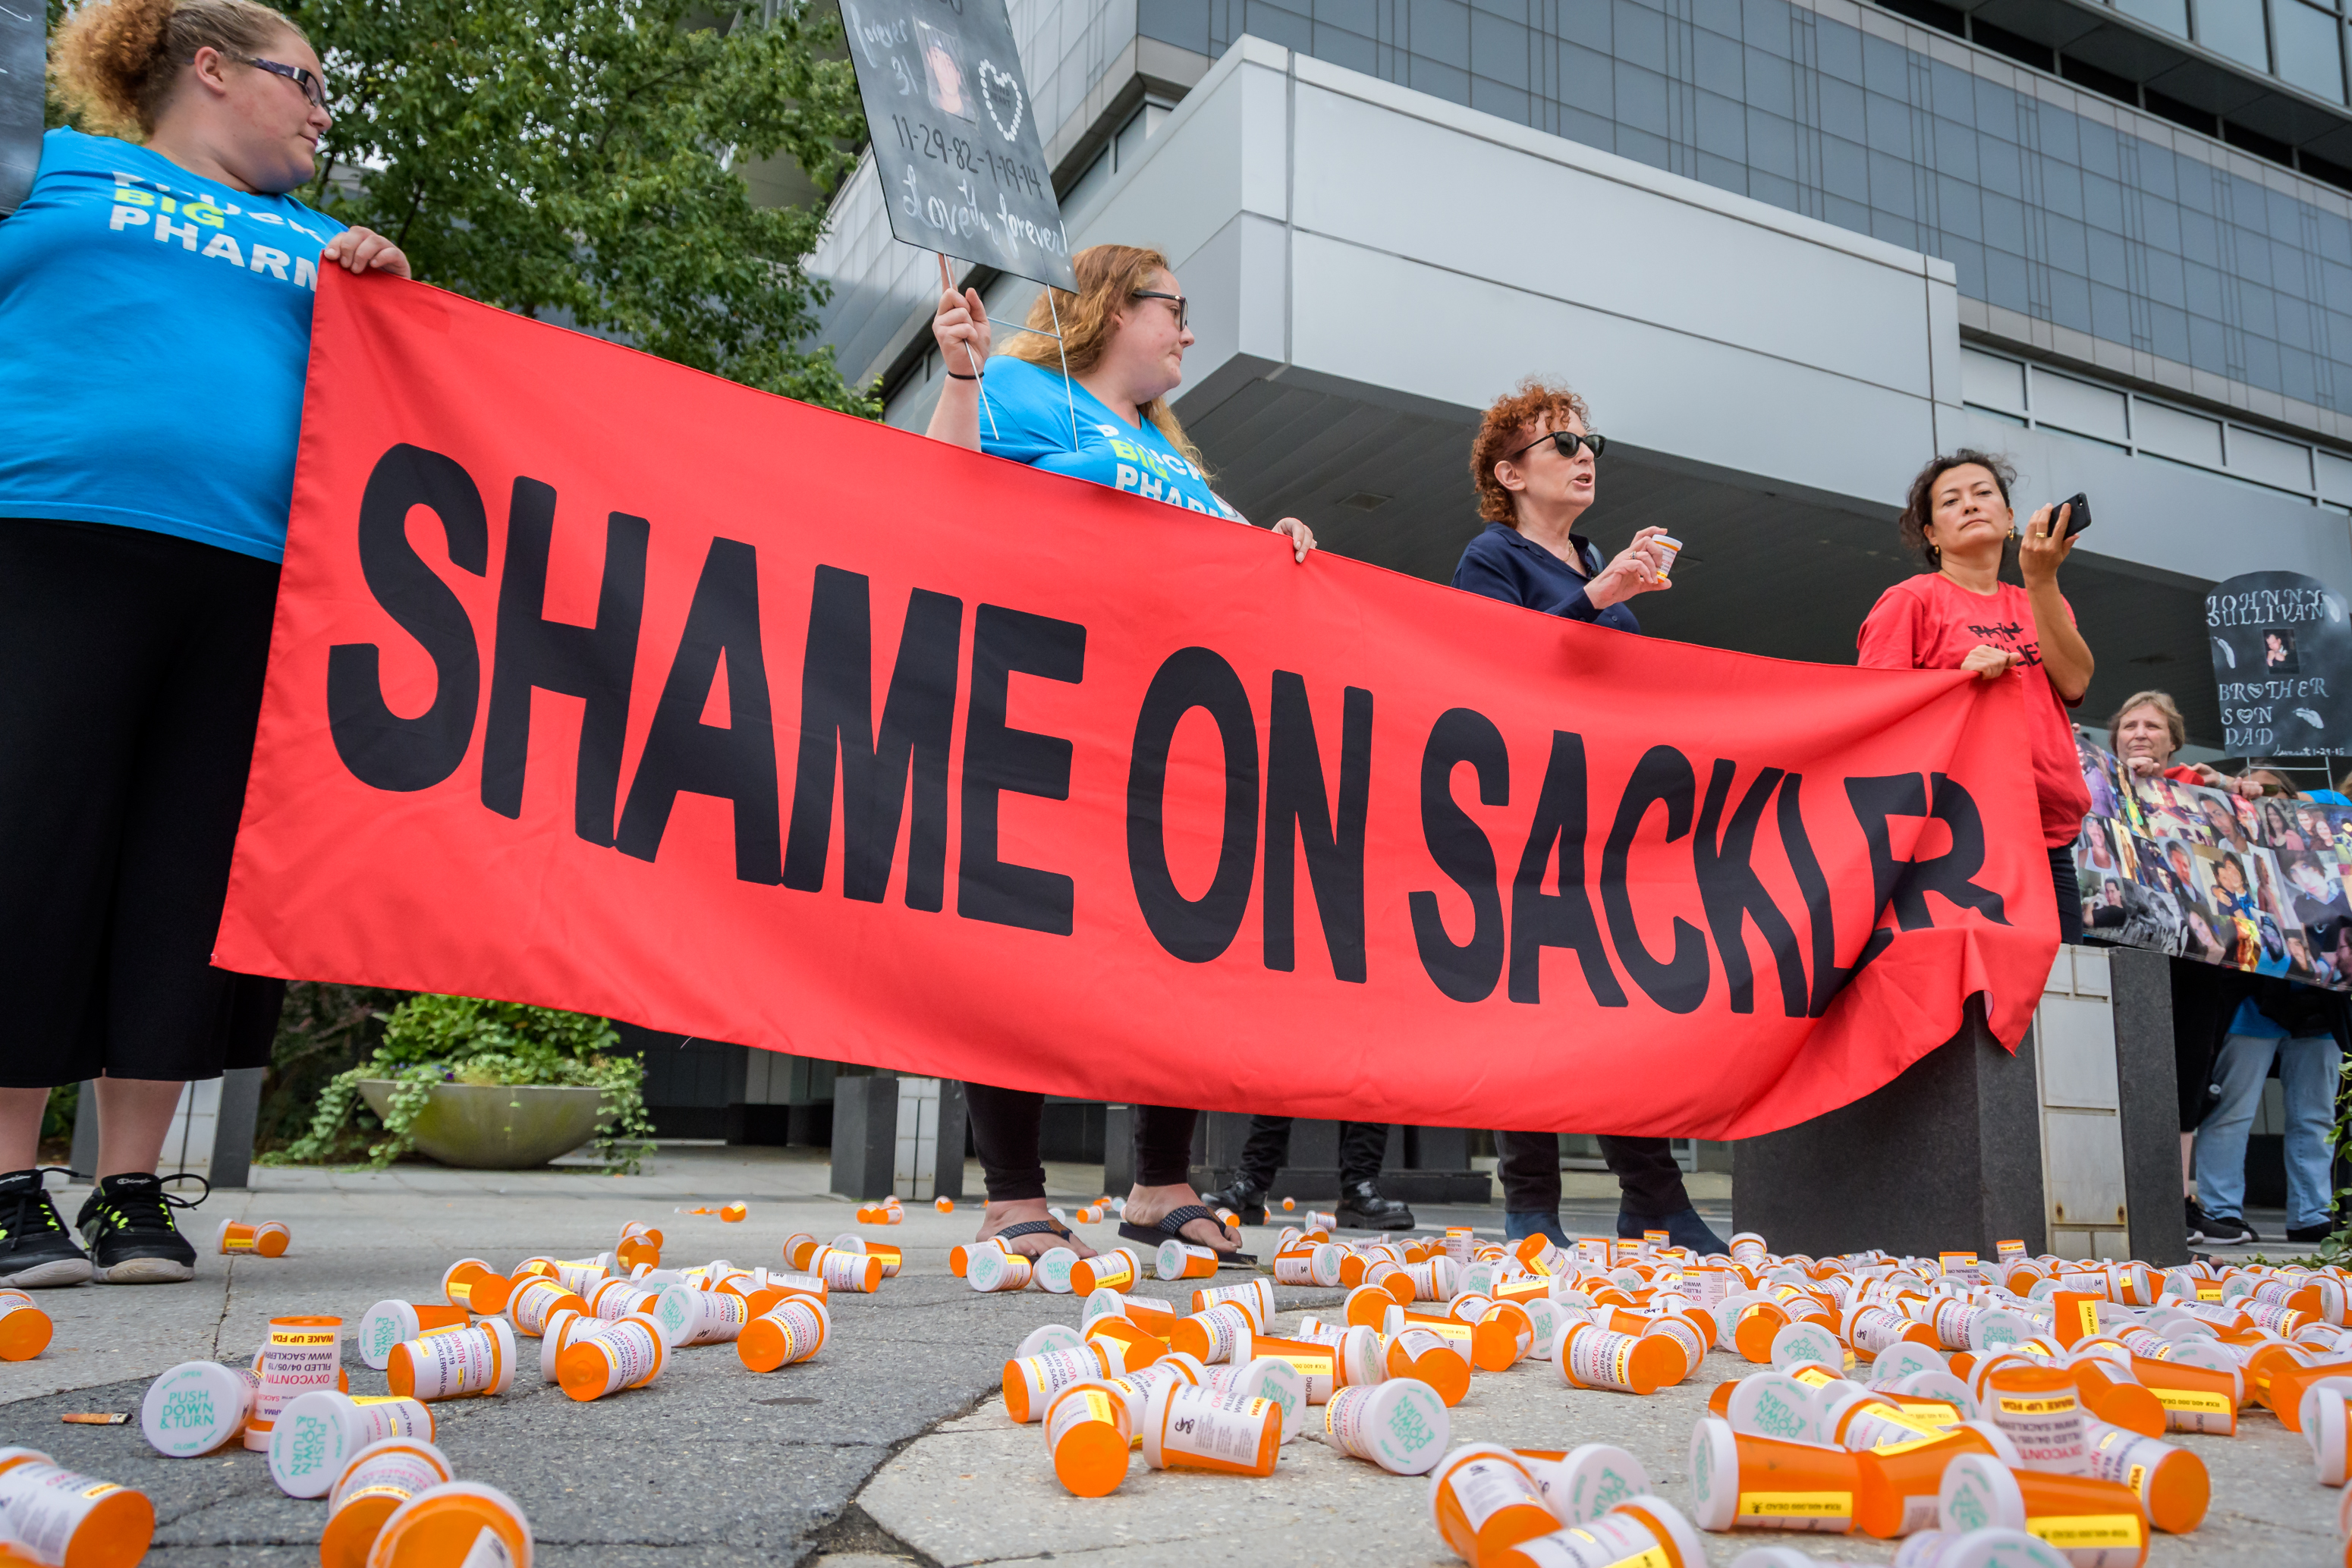 A protest on September 12, 2019, outside Purdue Pharma headquarters in Stamford, Connecticut.